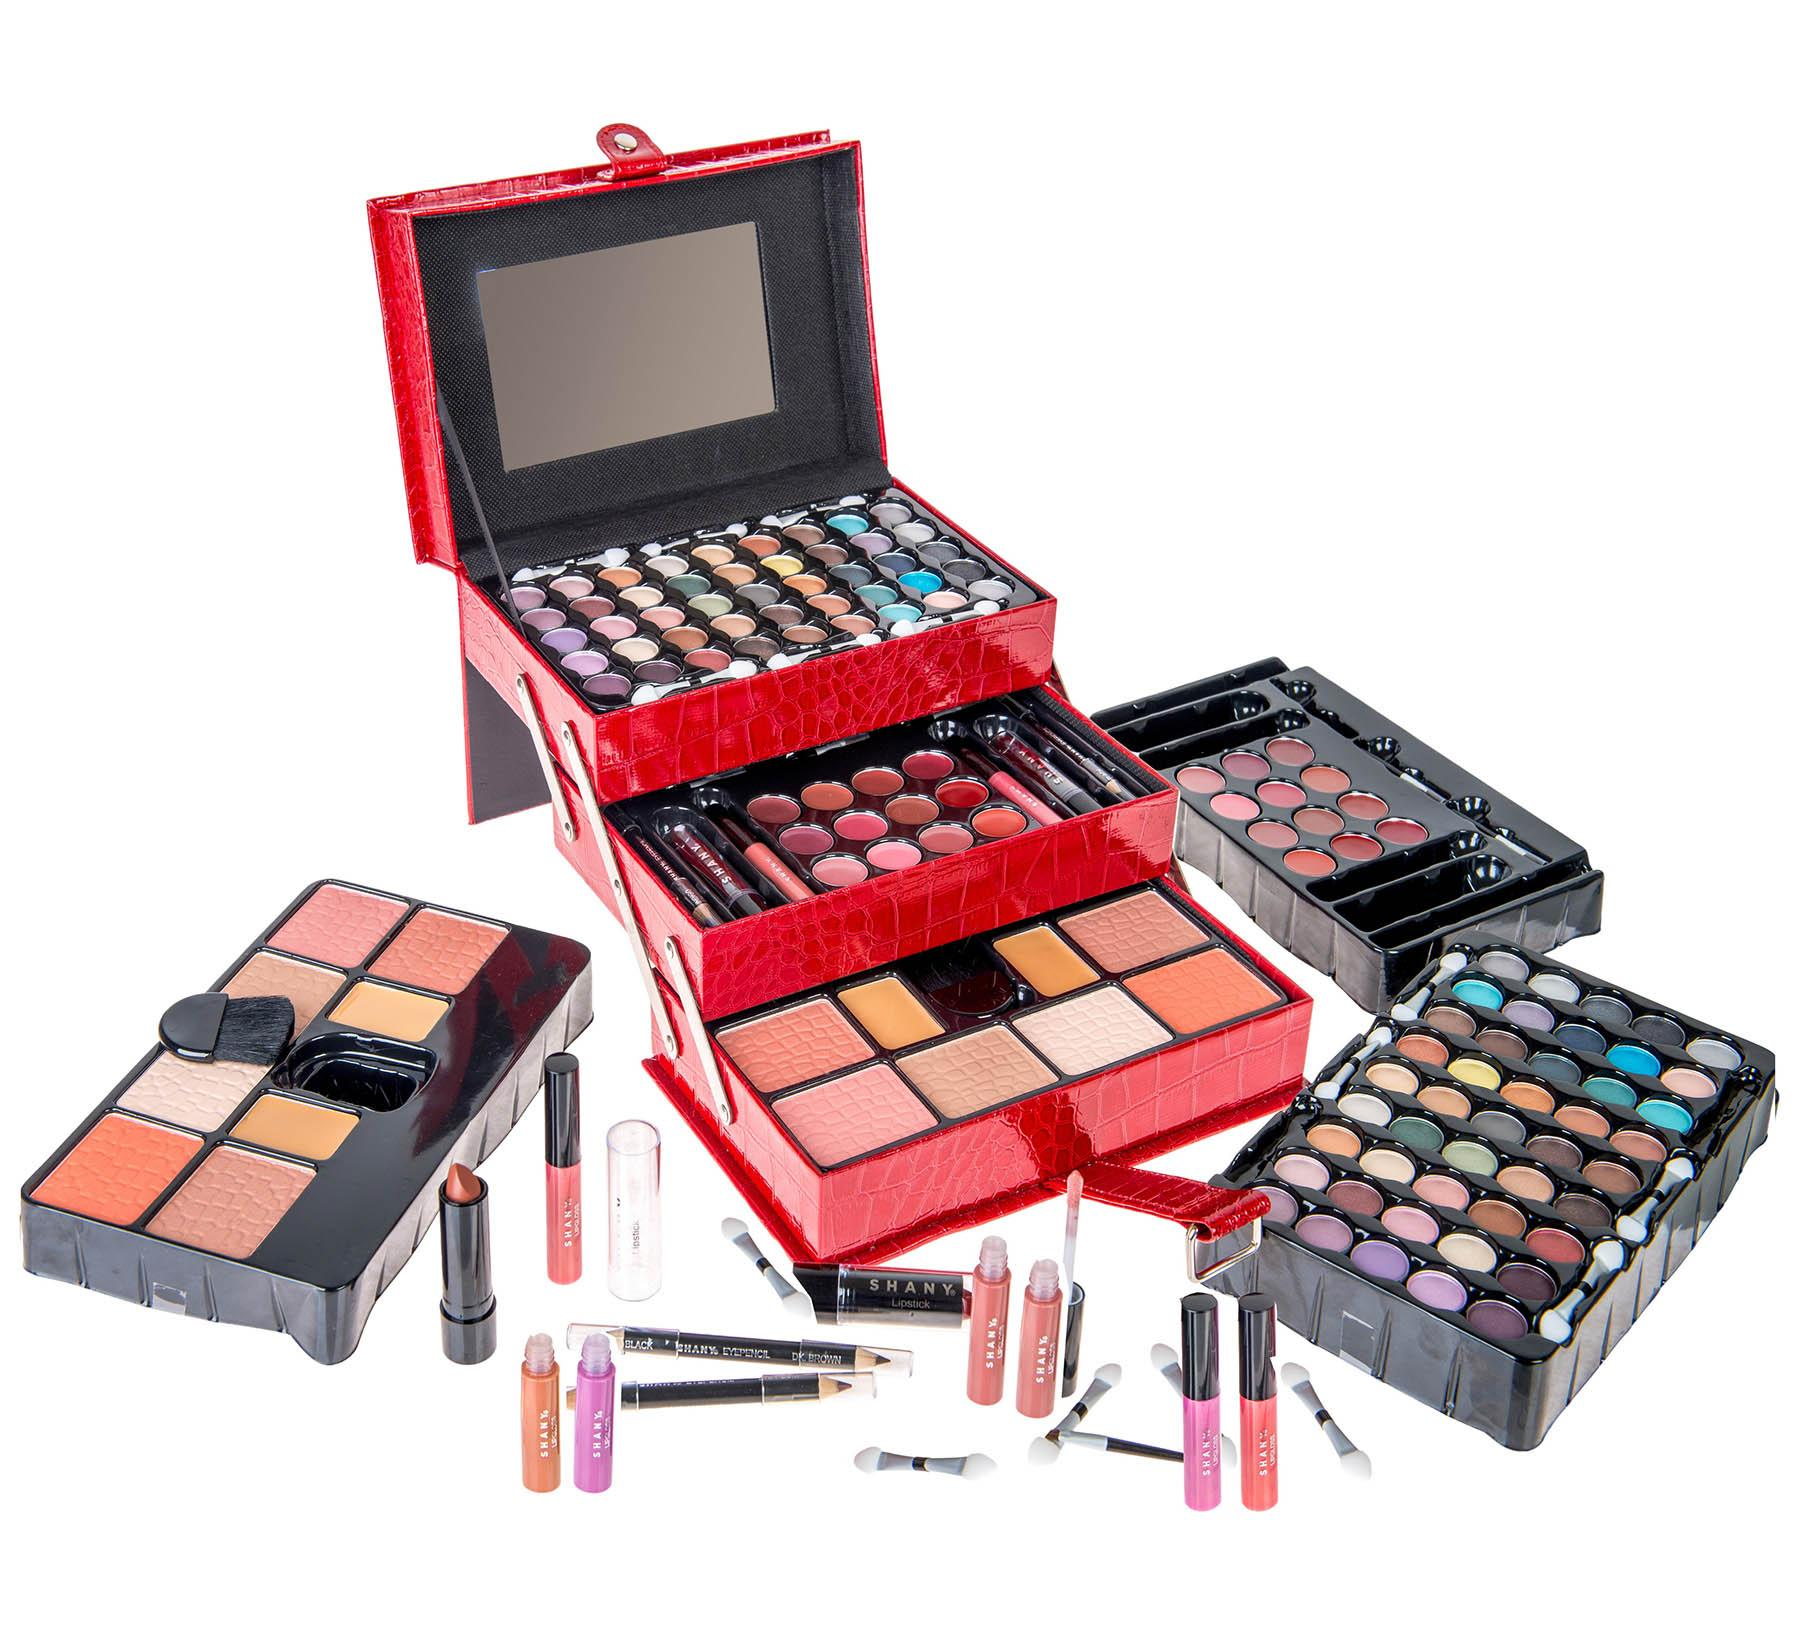 Amazon.com : SHANY All In One Makeup Kit (Eyeshadow